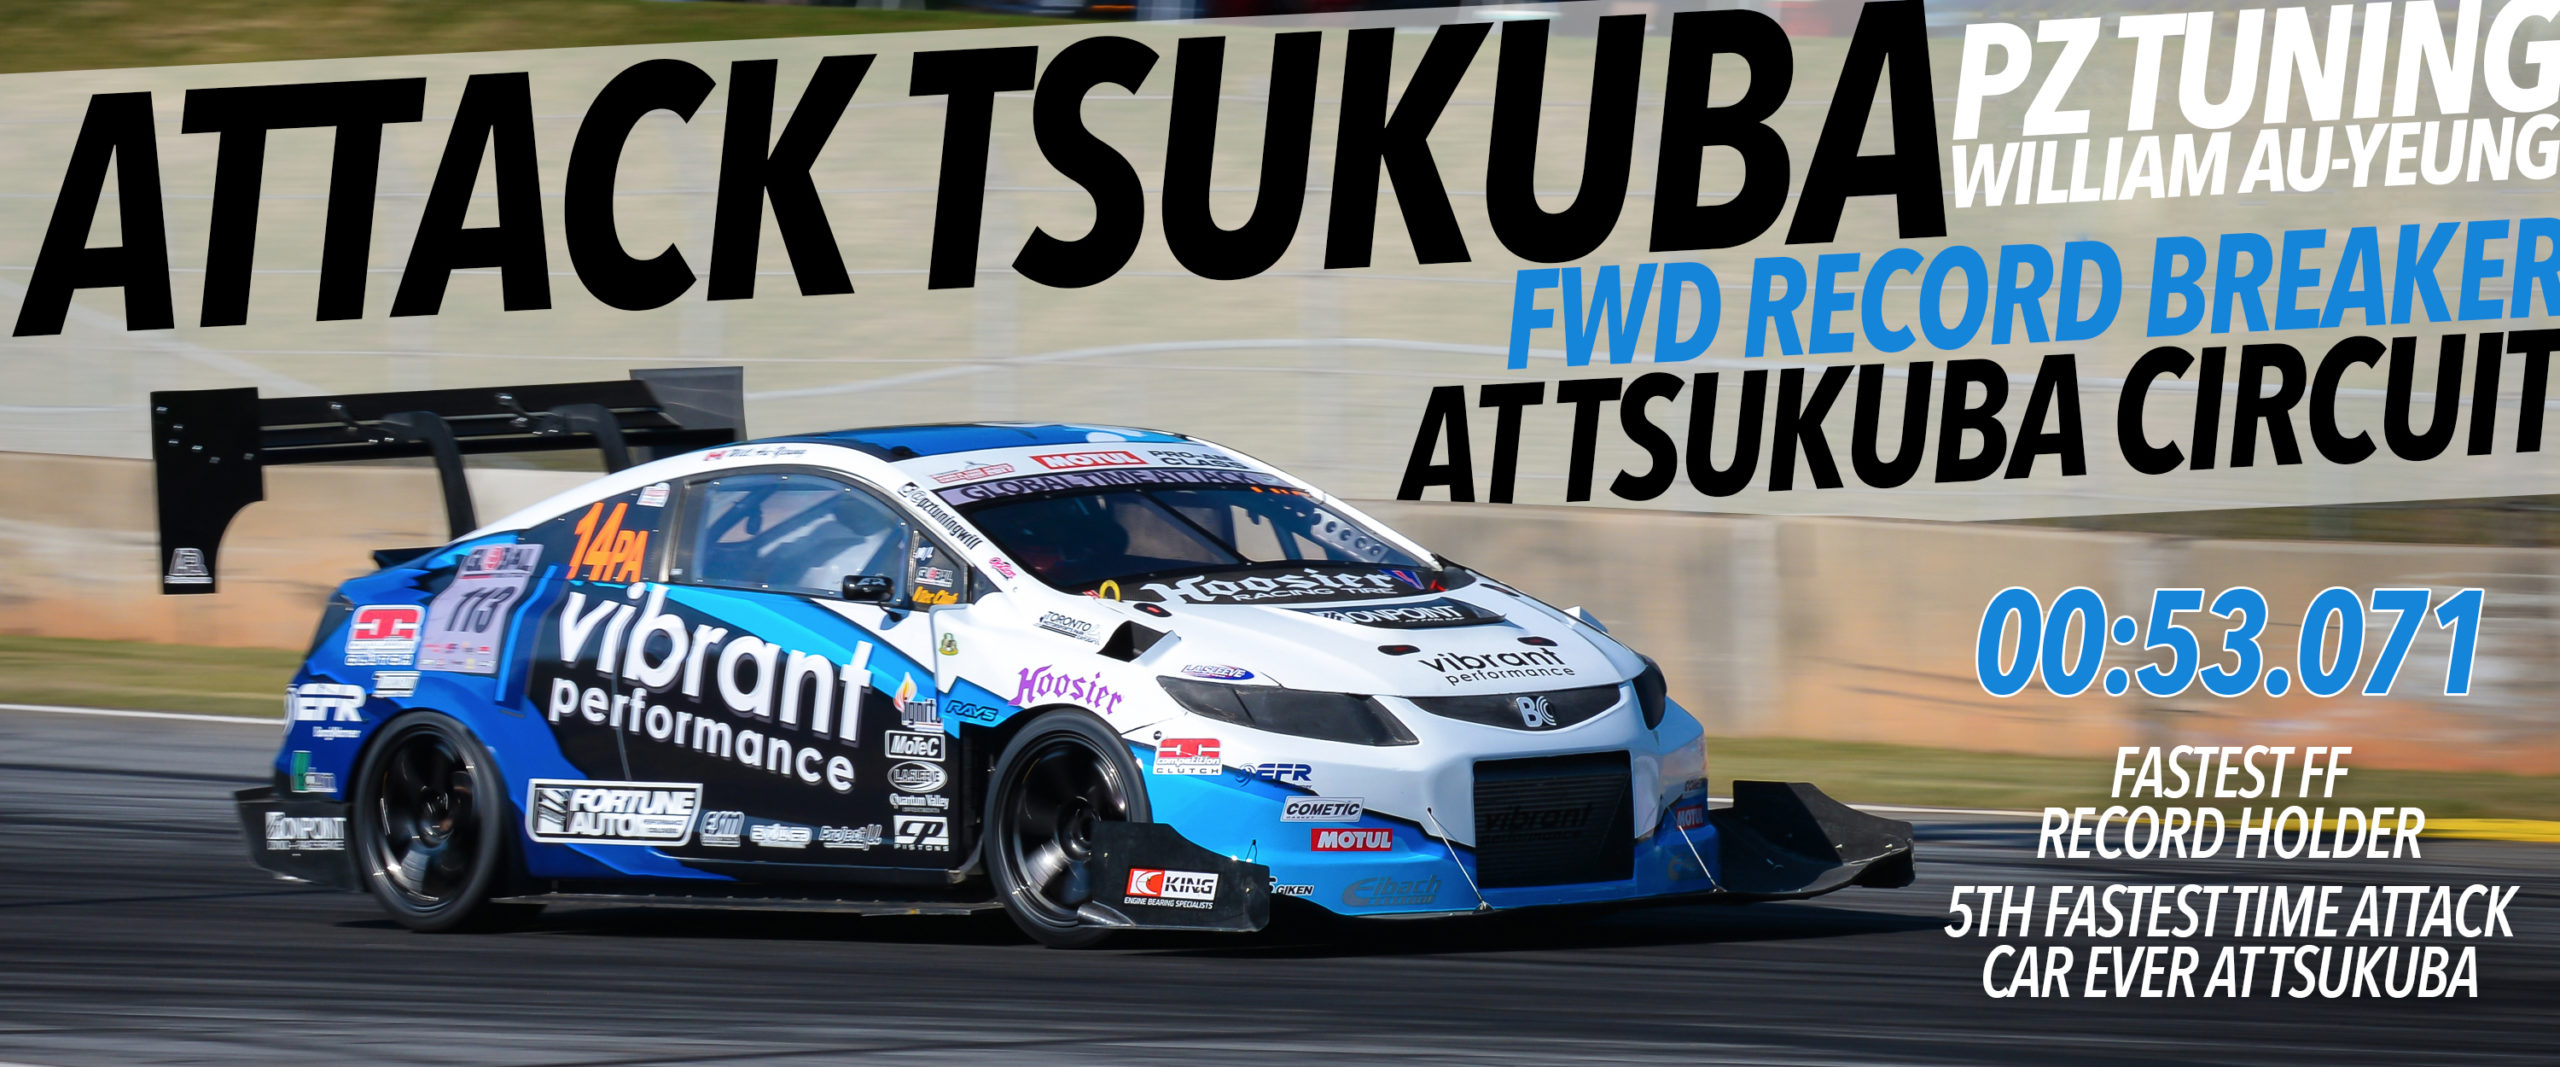 Performance coilovers by fortune auto setting the attack tsukuba fed record on attsukuba circuit